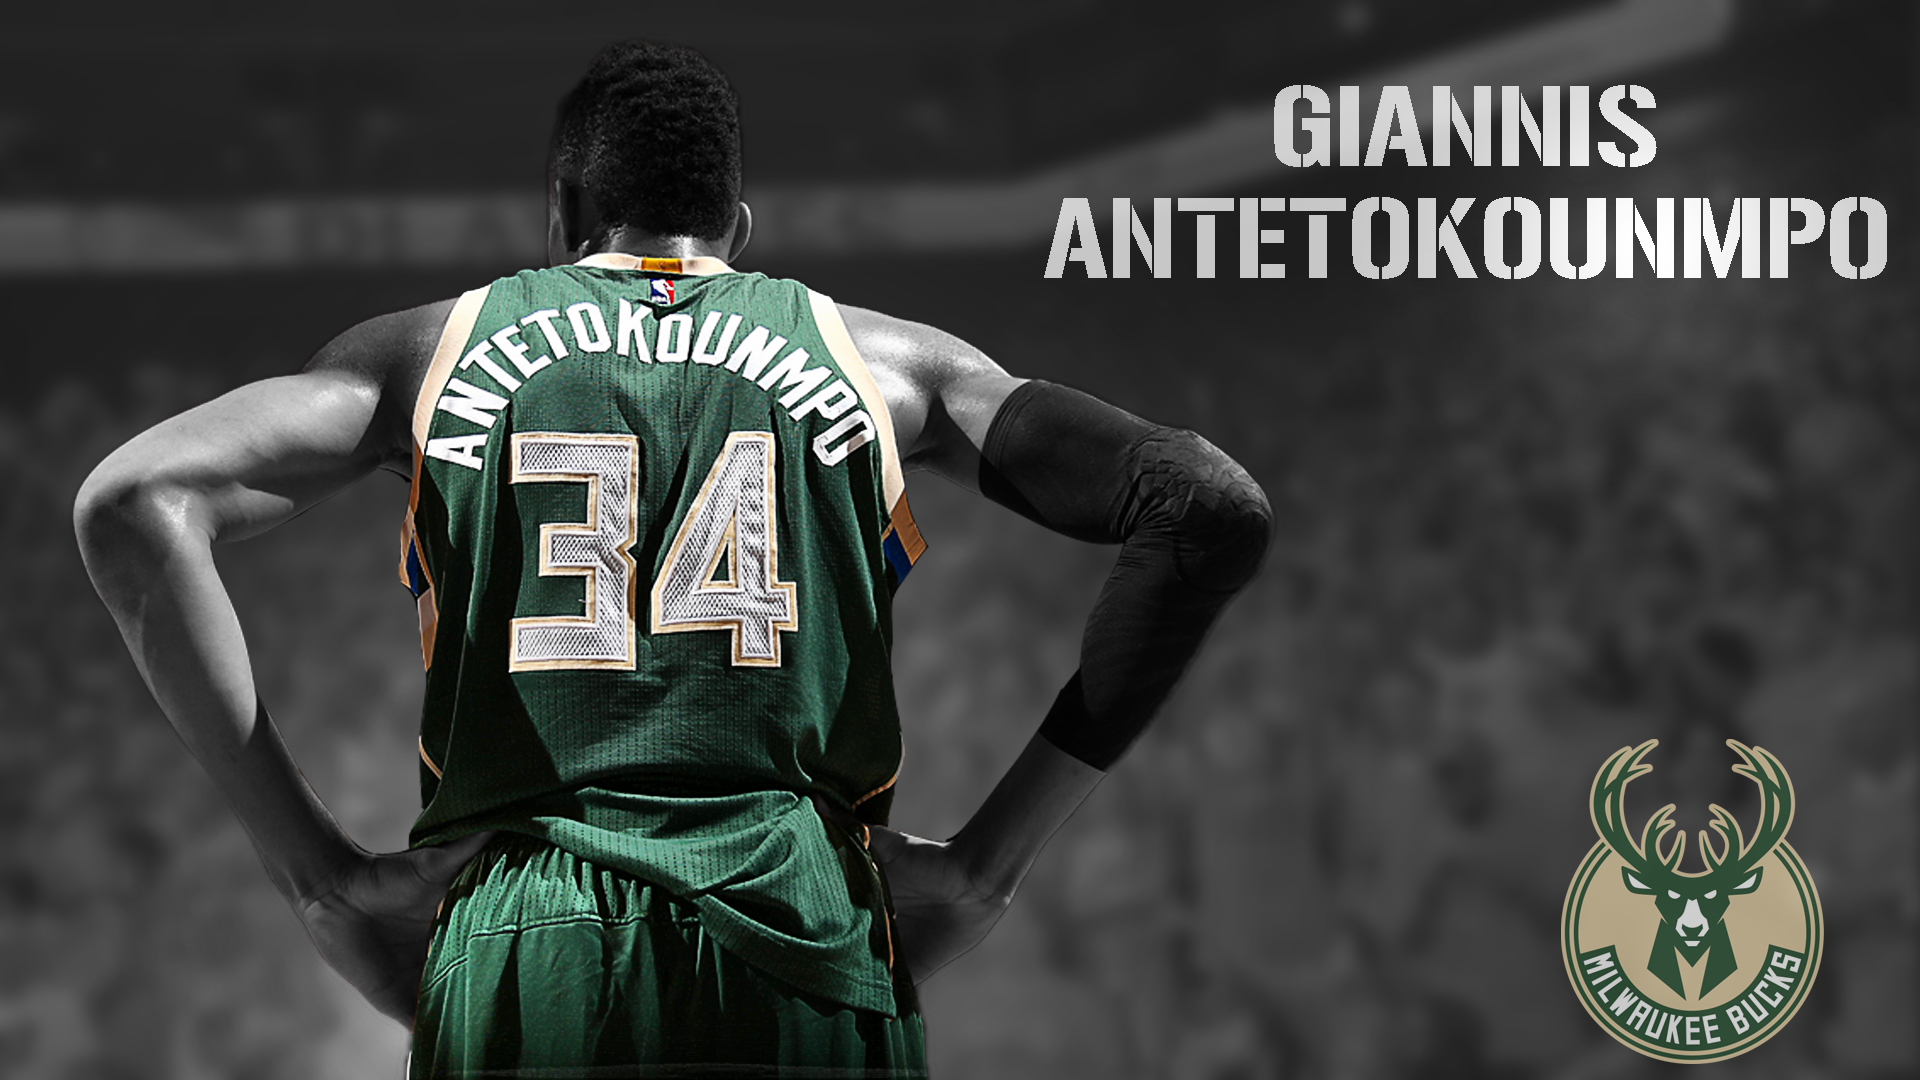 Giannis Antetokounmpo Wallpaper バスケ